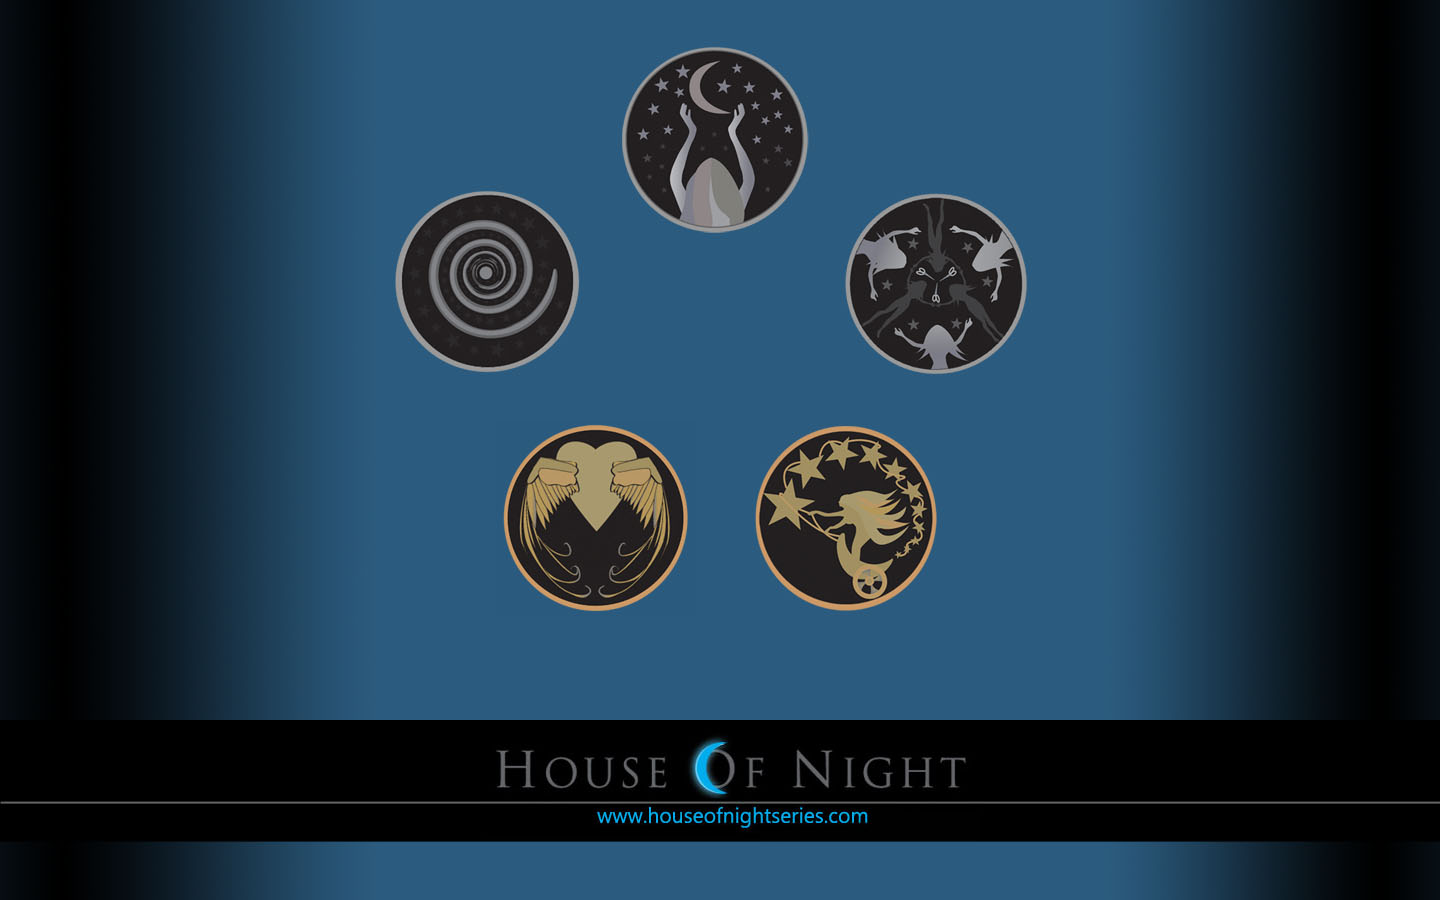 H o n images house of night book hd wallpaper and background h o n images house of night book hd wallpaper and background photos biocorpaavc